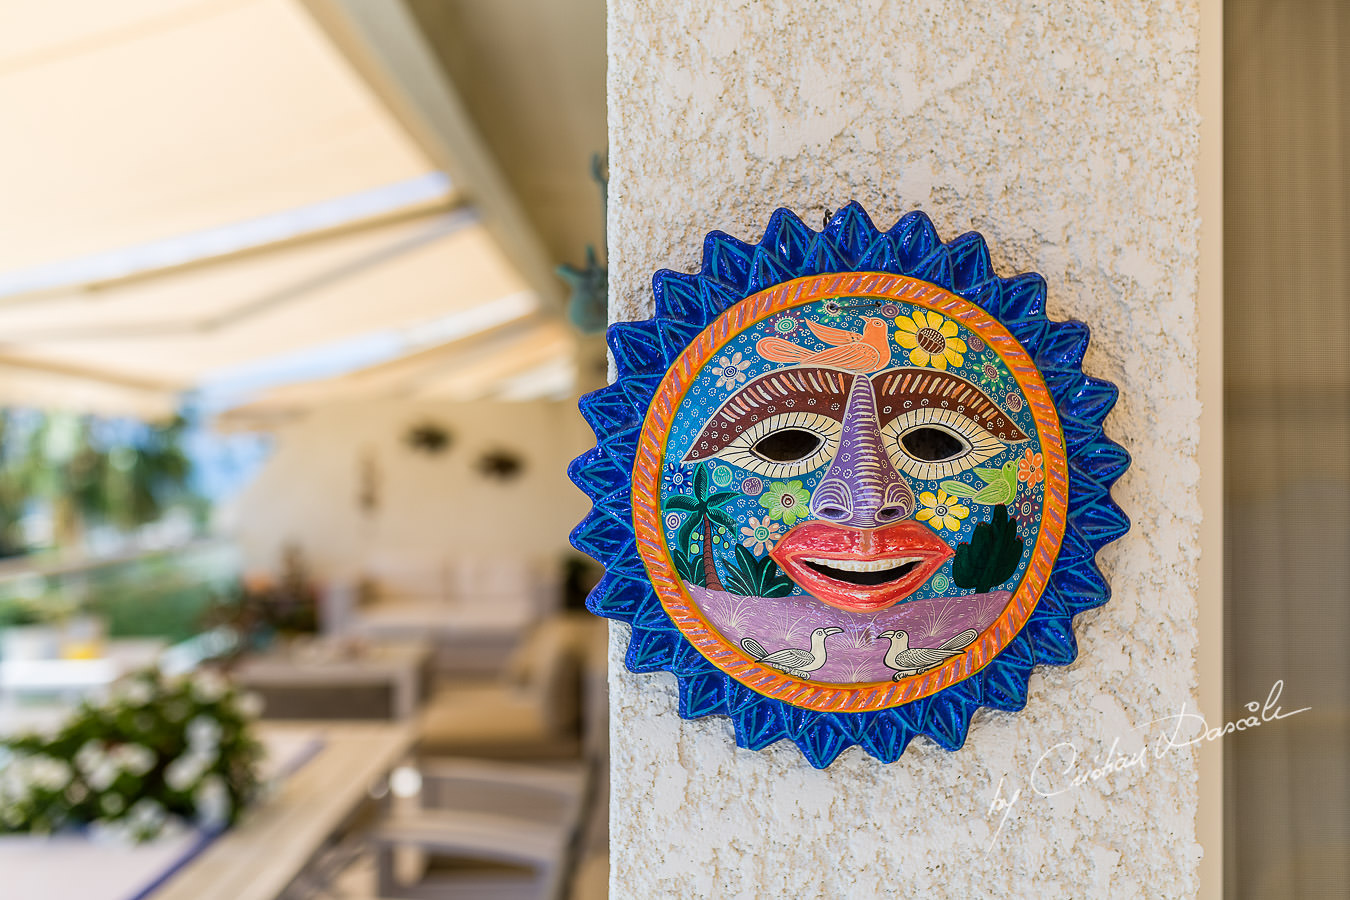 Artistic details captured during a wedding at St Raphael Hotel in Limassol by Cristian Dascalu.